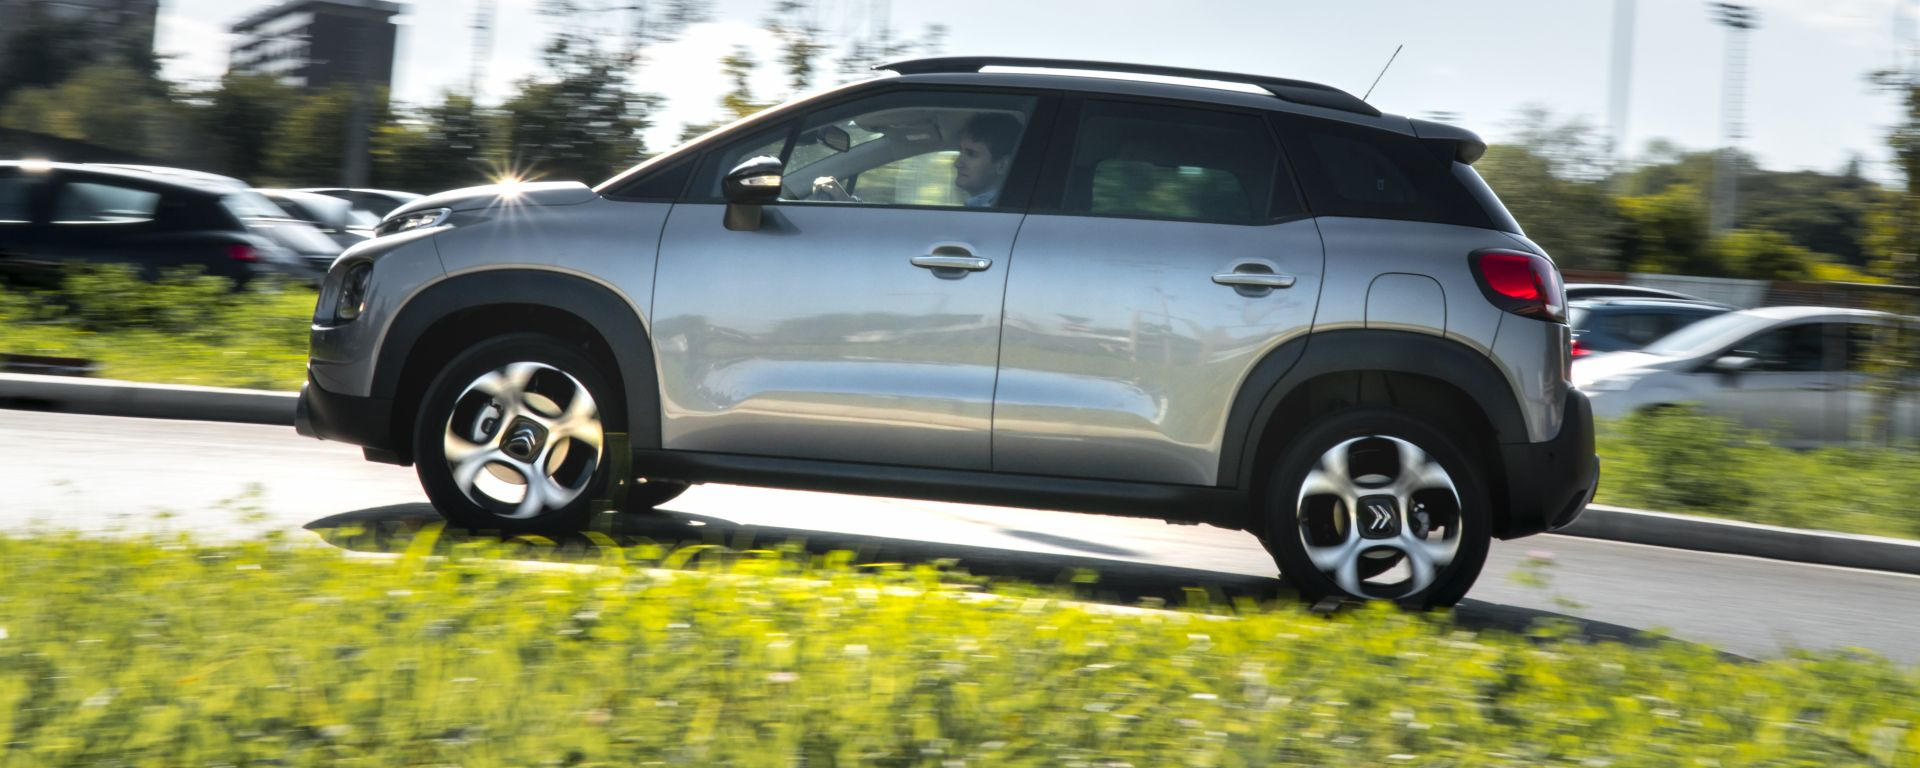 Citroen C3 Aircross: vista laterale